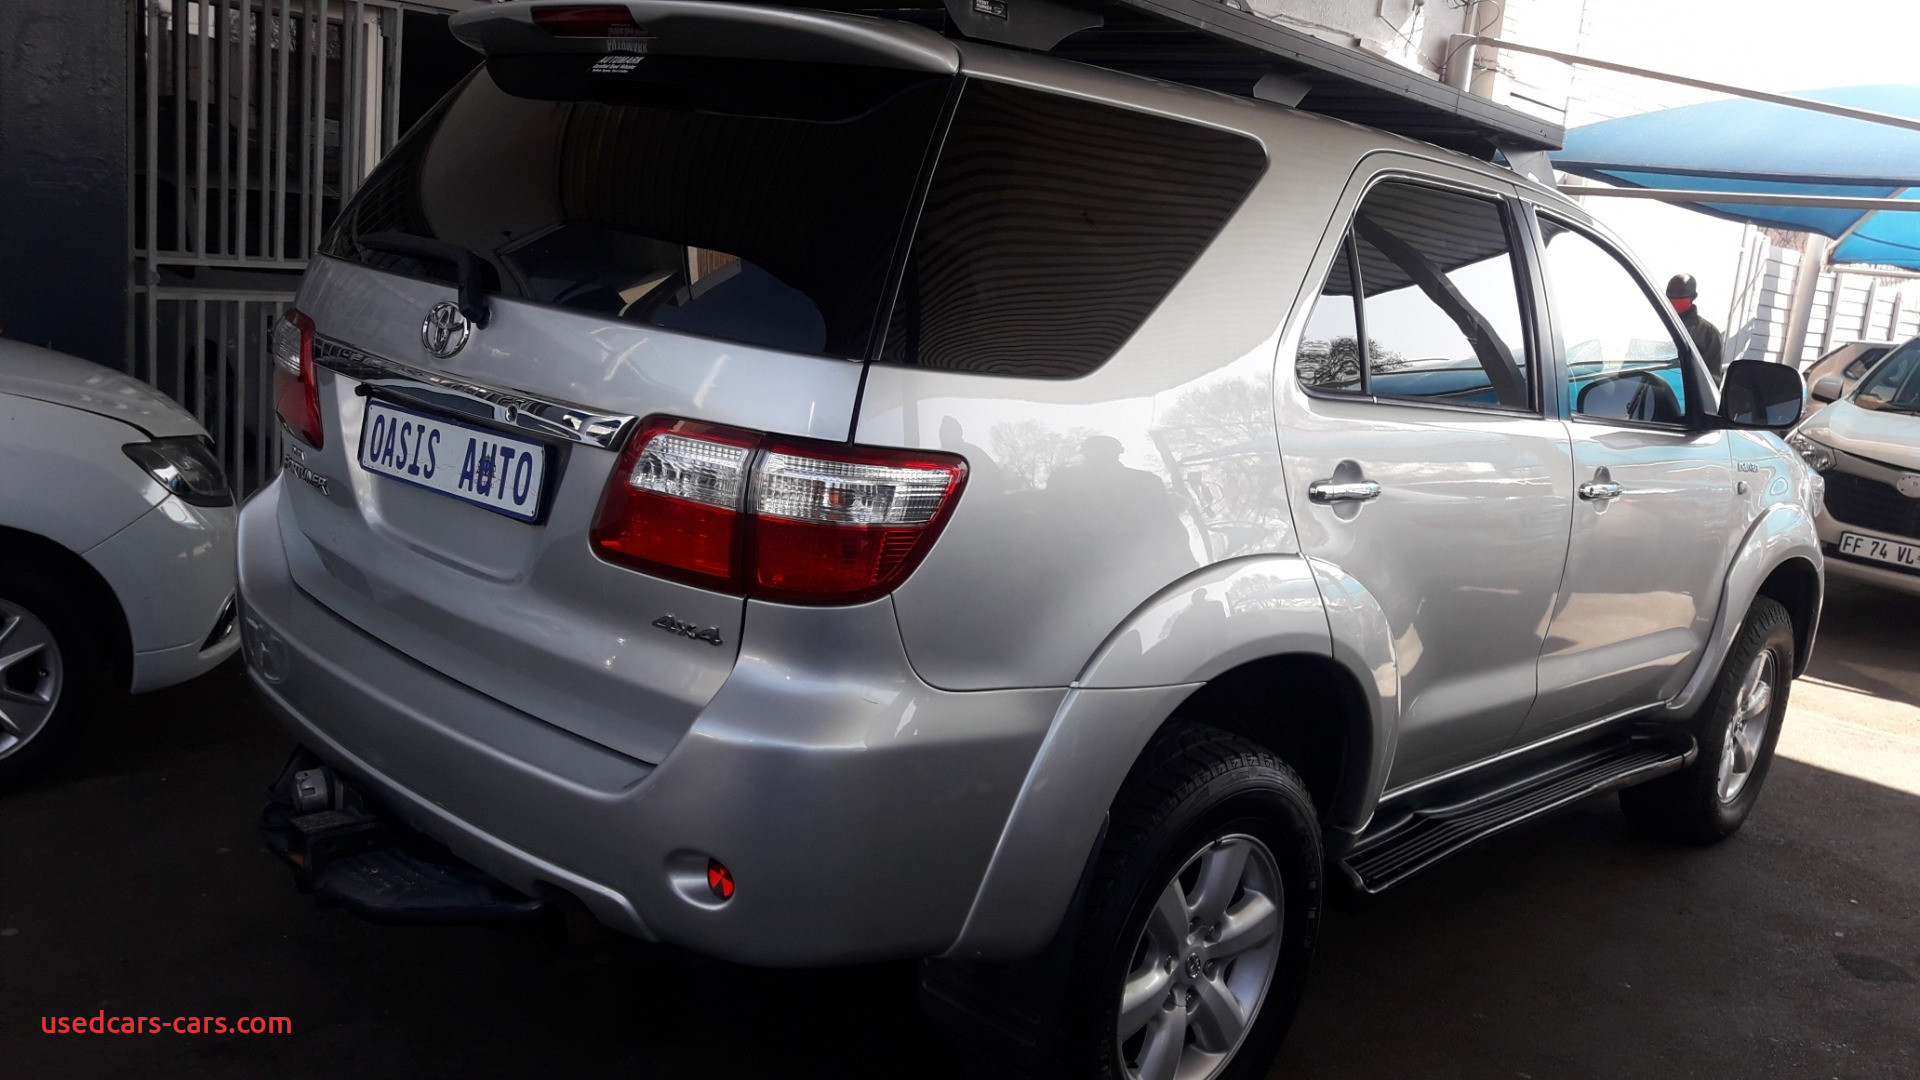 Used Cars for Sale with Low Mileage Elegant toyota fortuner fortuner 3 0d 4d for Sale In Gauteng